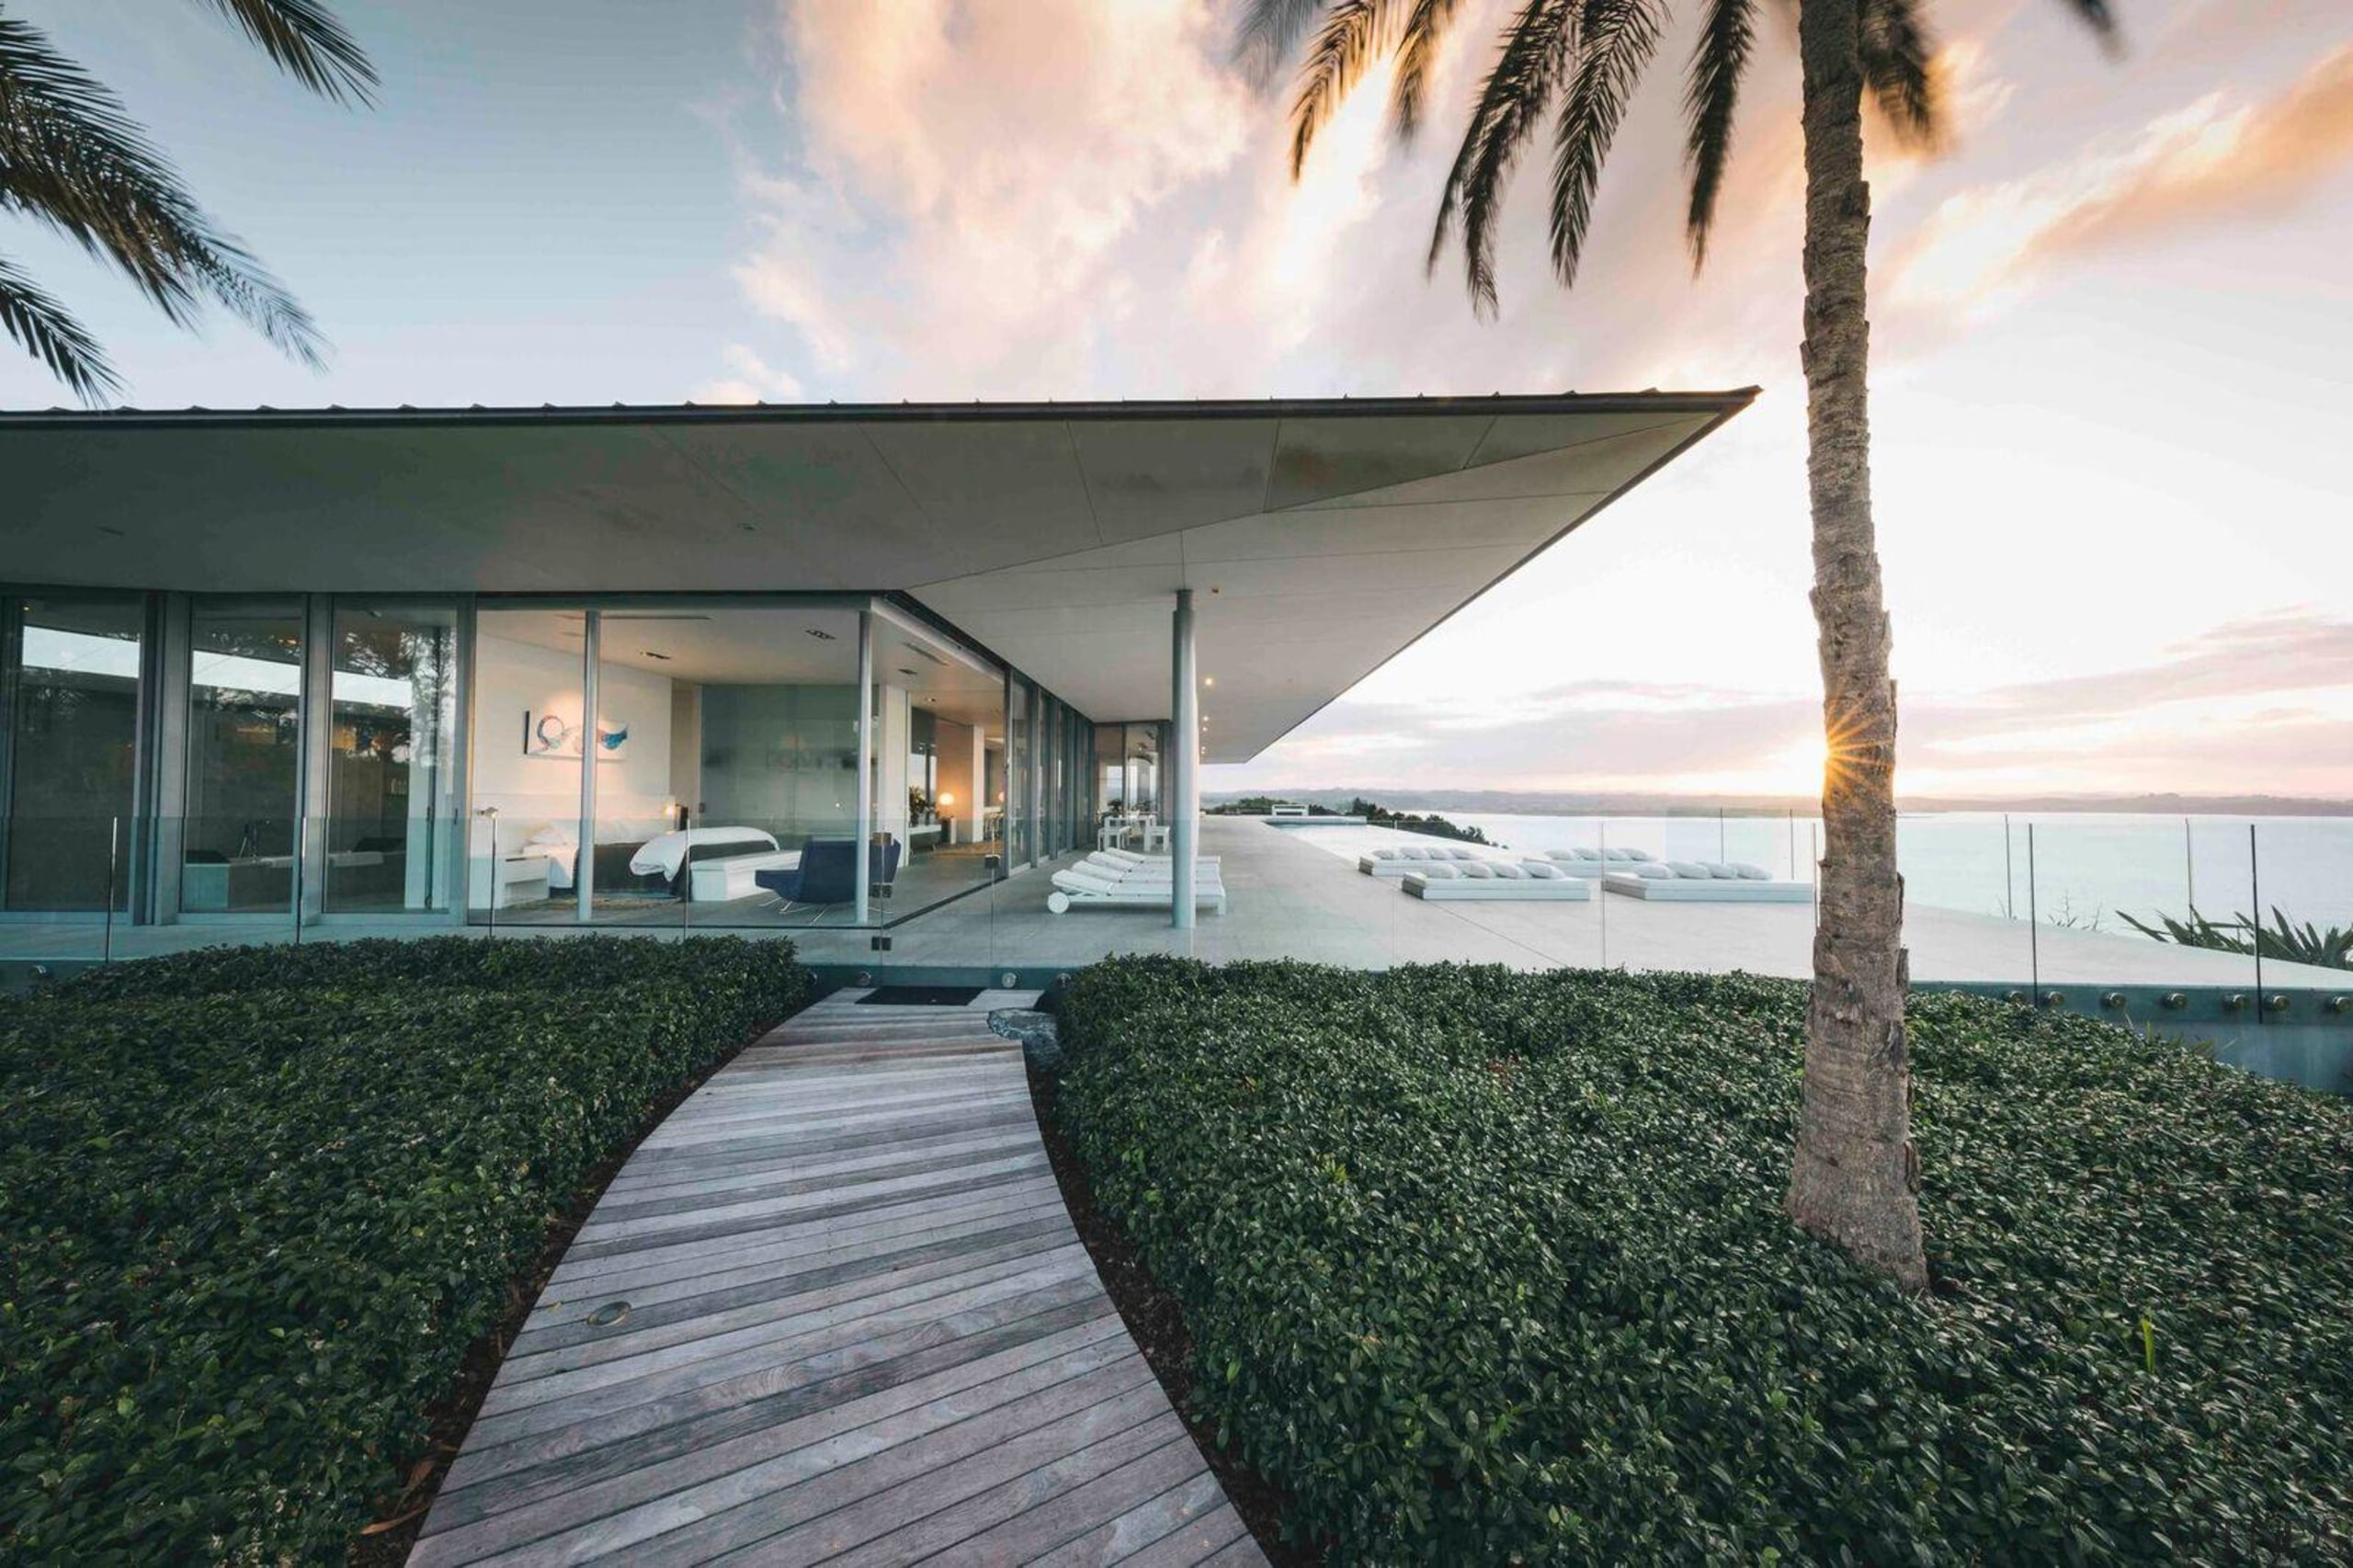 Eagles Nest, Bay of Islands, New Zealand - architecture, building, eco hotel, estate, facade, home, house, interior design, palm tree, property, real estate, resort, sky, tree, vacation, villa, gray, white